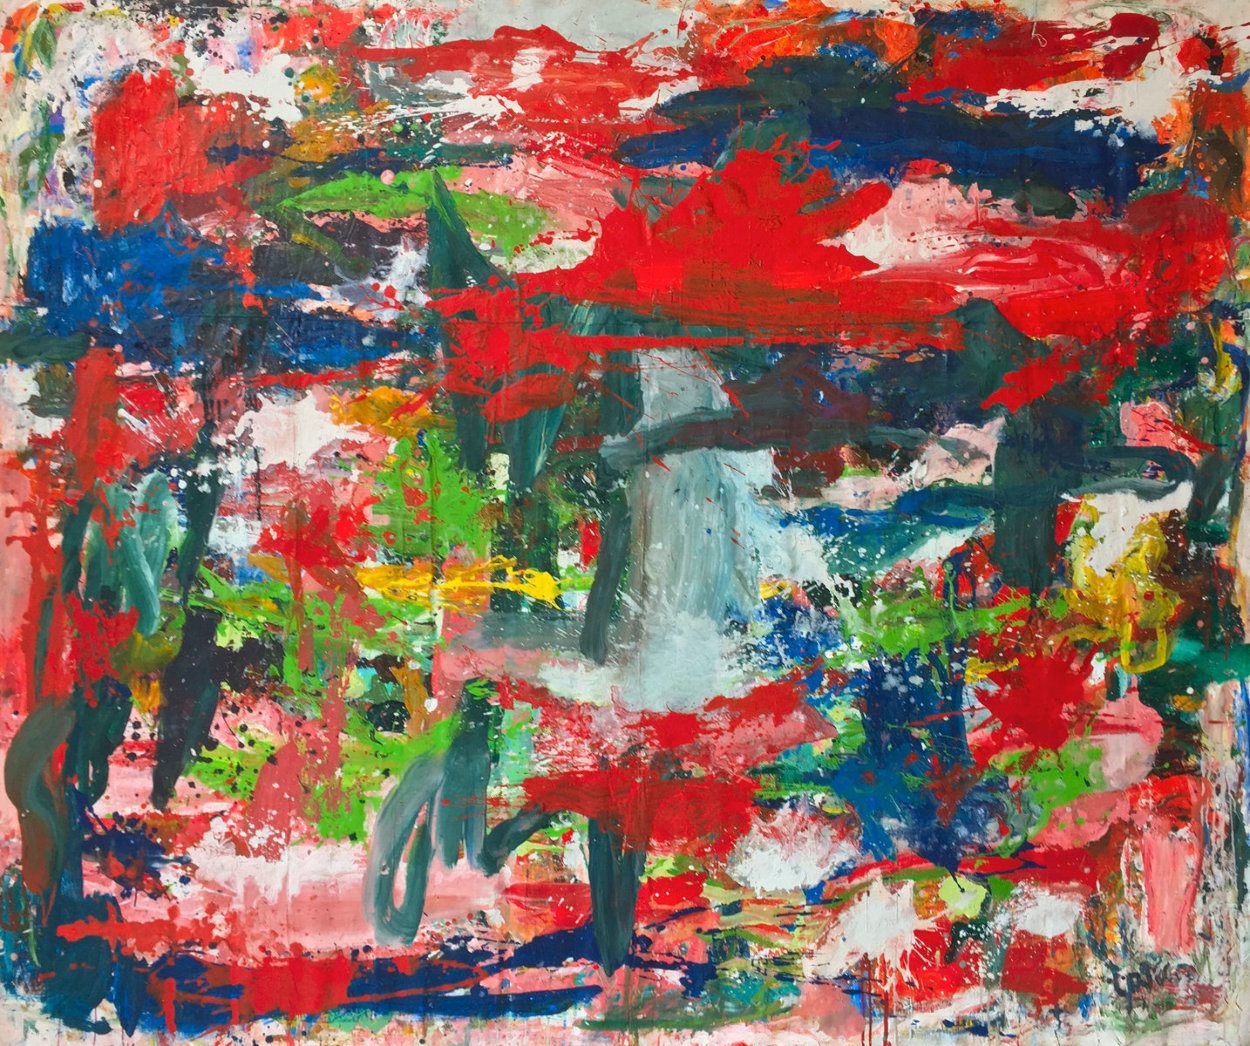 Major Dimensions 2019 90x79 Original Painting by Costel Iarca